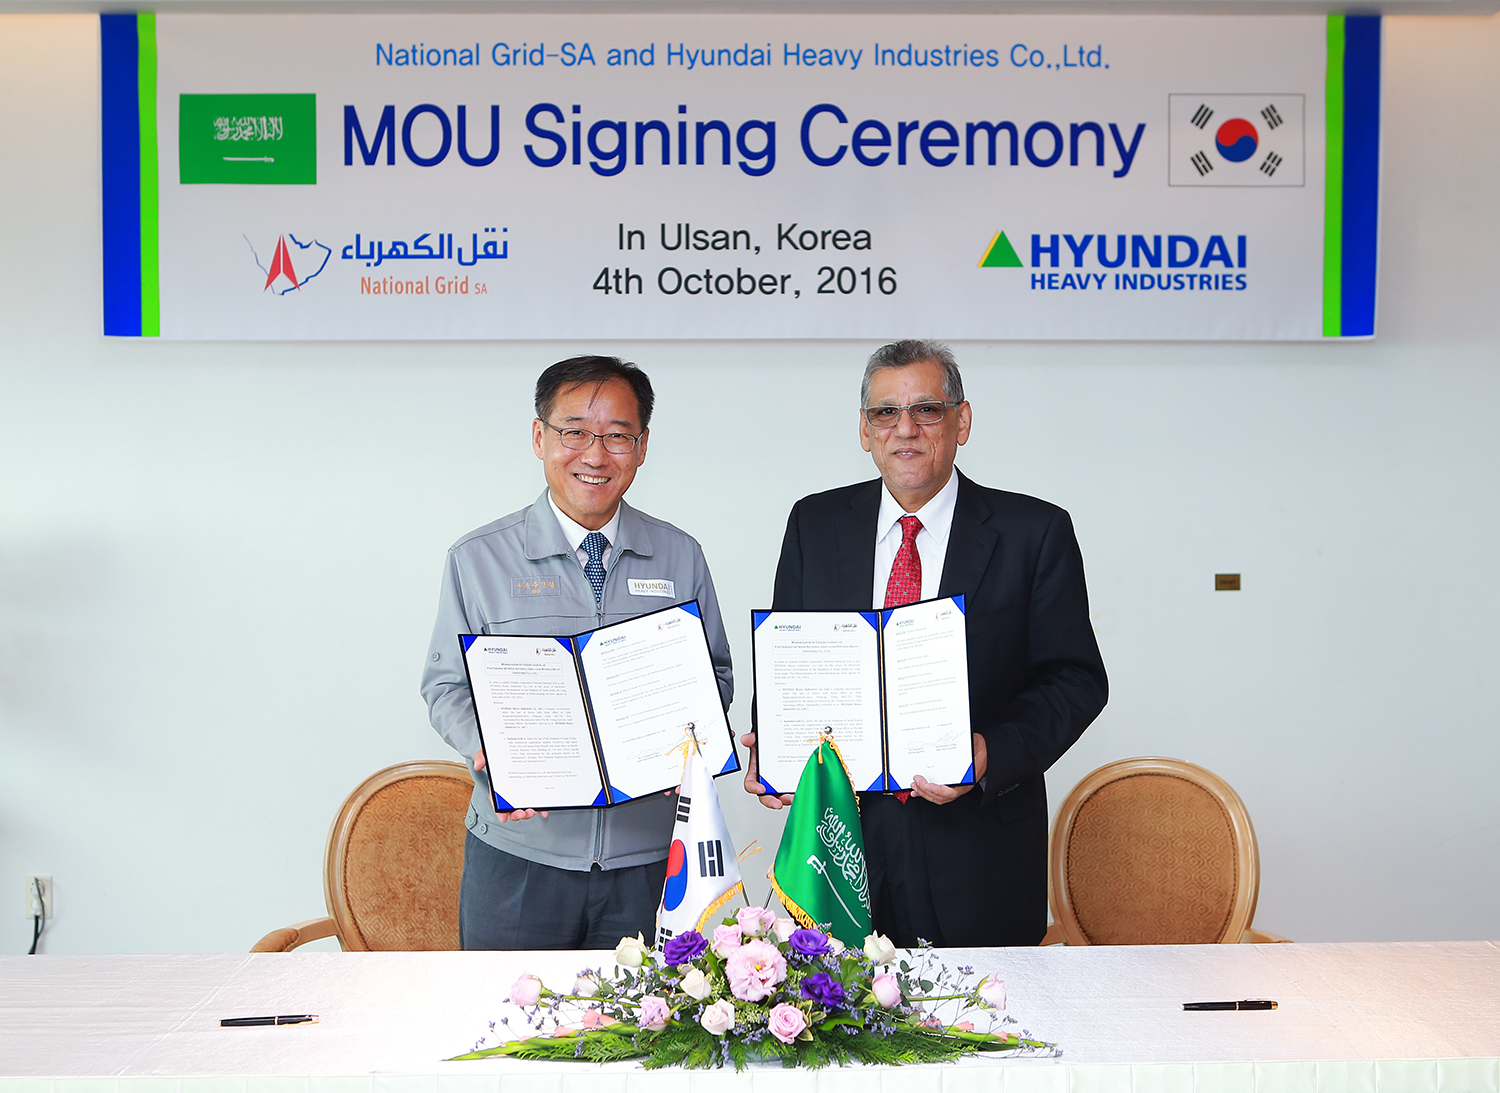 Hyundai Heavy Industries and National Grid SA of Saudi Arabia Sign MOU for Comprehensive Cooperation for Heavy Electric Equipment Business